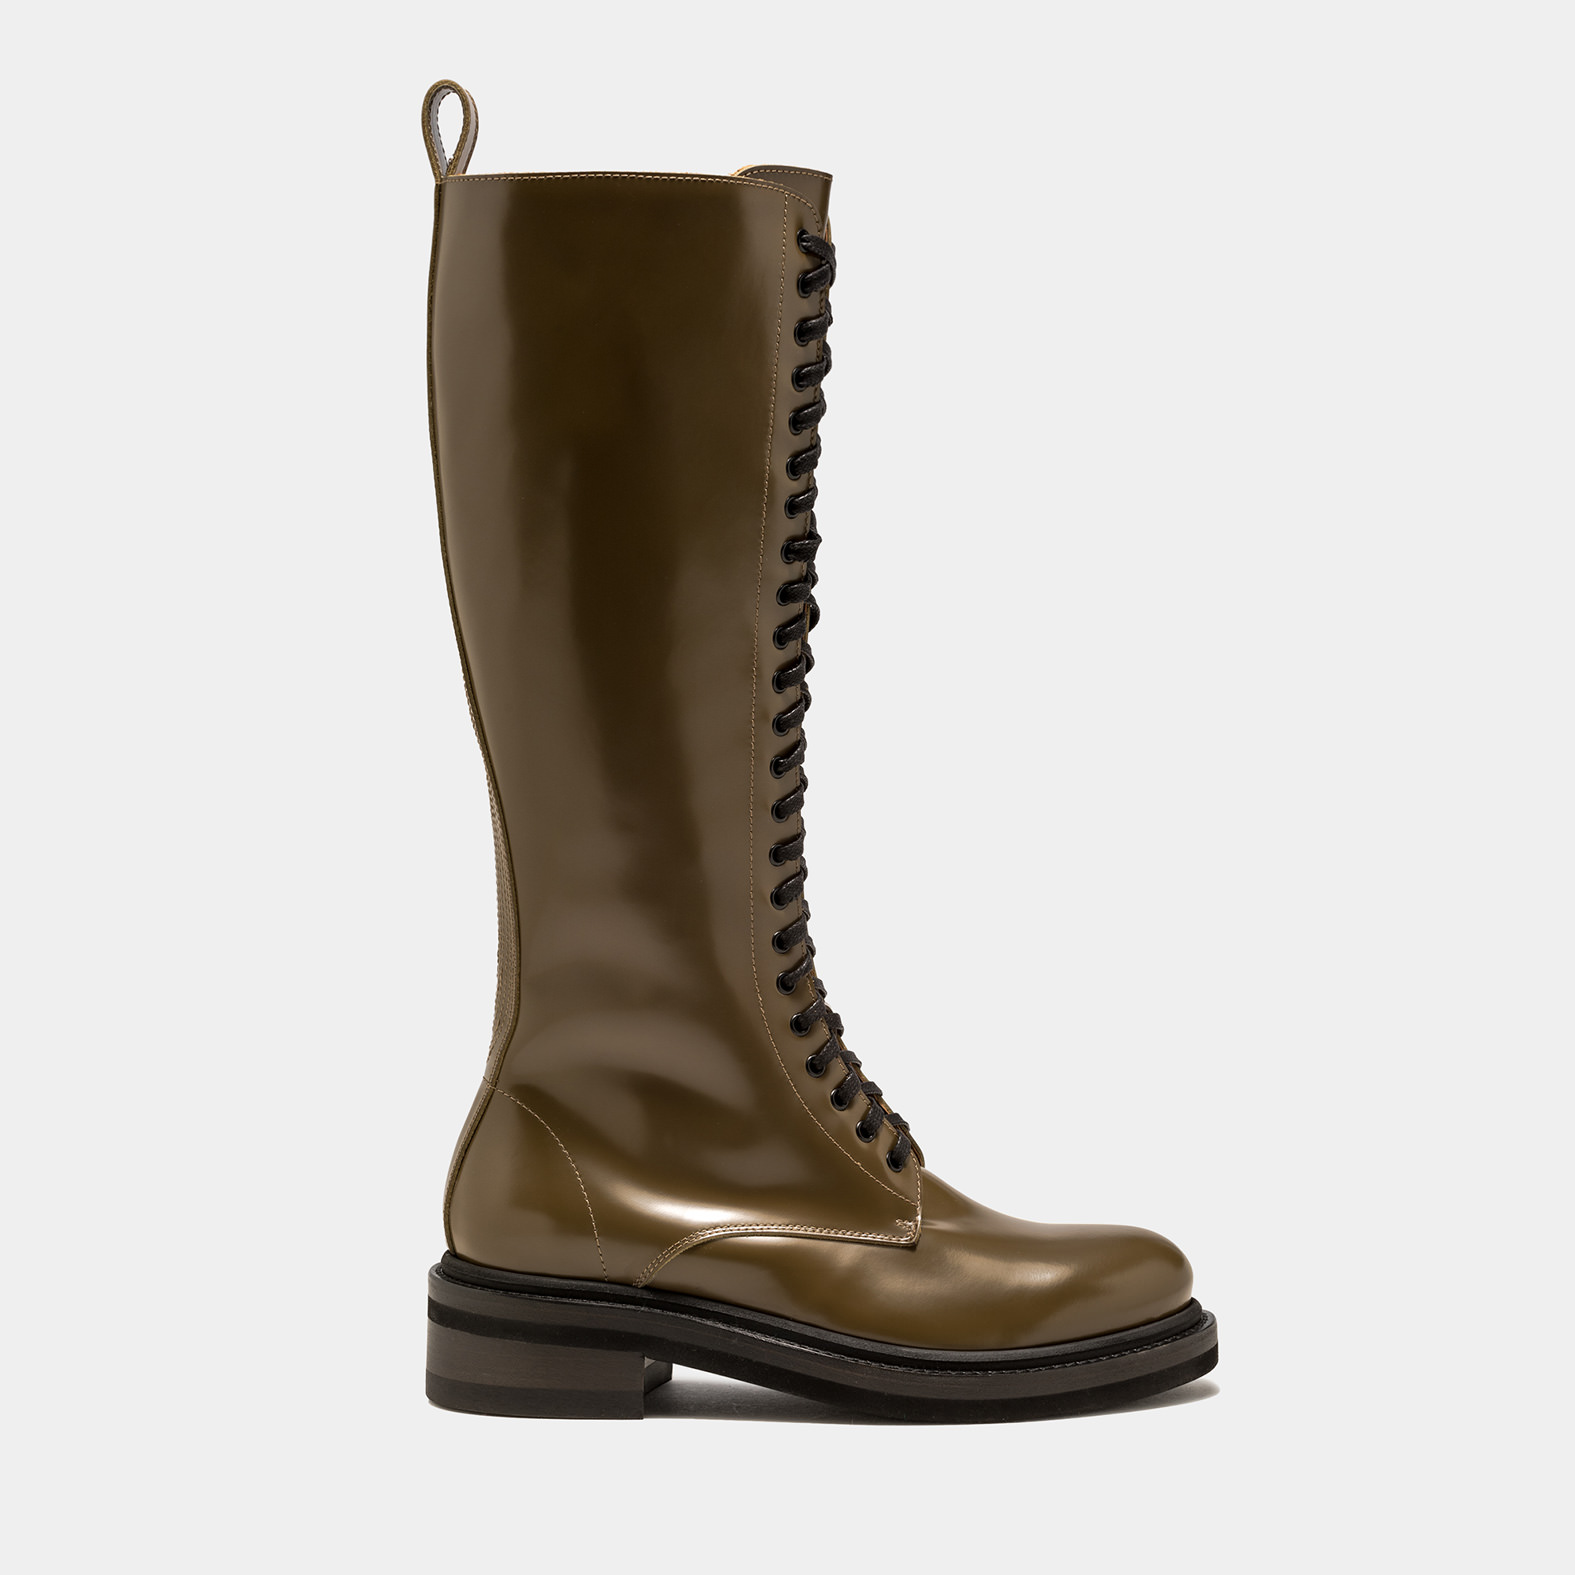 BUTTERO: HIGH COMBAT BOOT IN LIKEN GREEN BRUSHED LEATHER